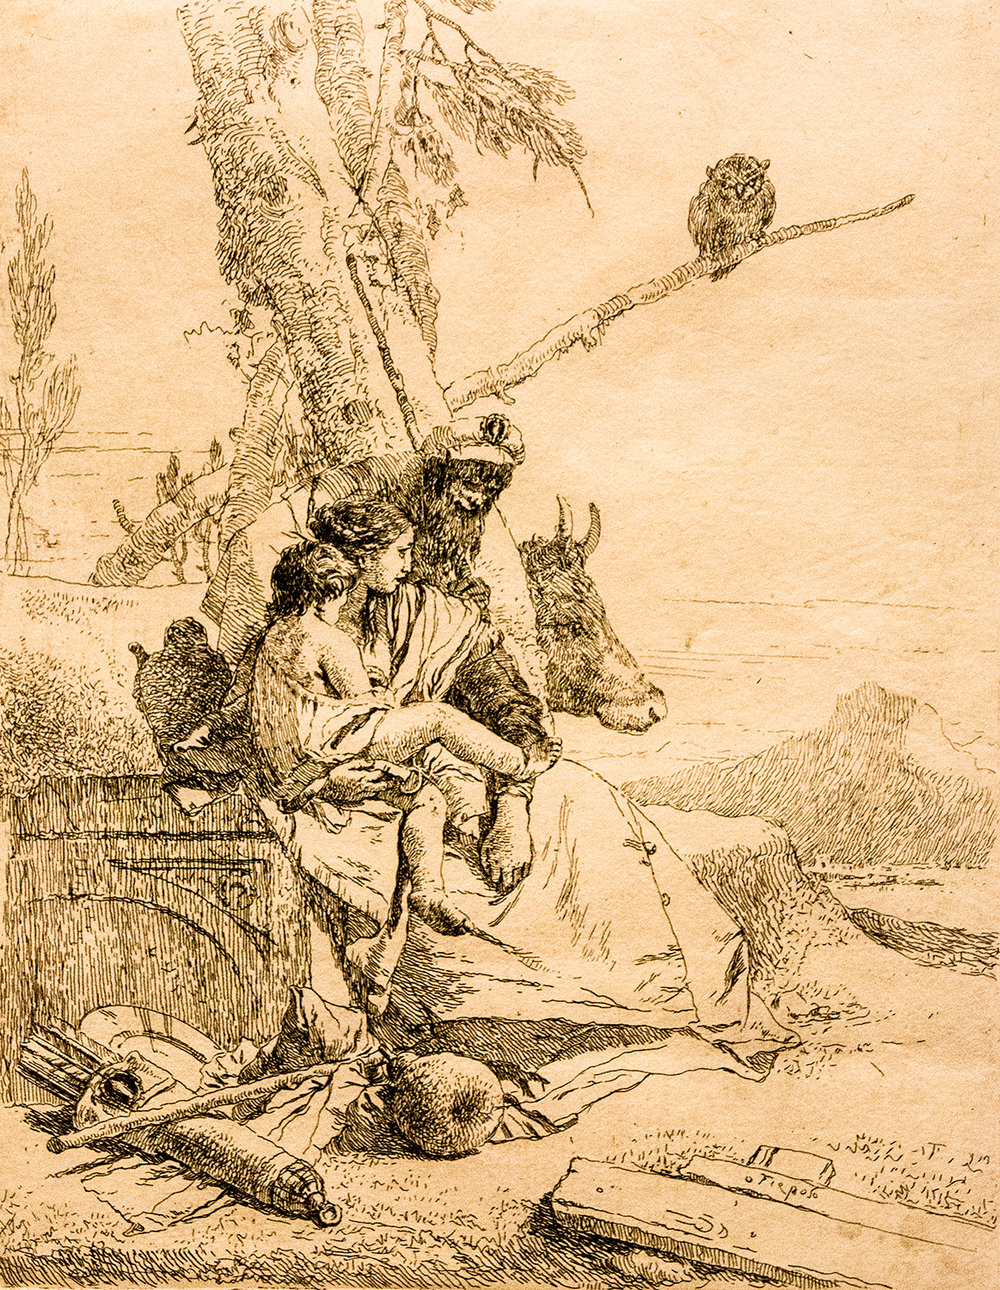 Giambattista Tiepolo,  The Family of the Oriental Peasant  (c 1750), from  Scherzi di Fantasia